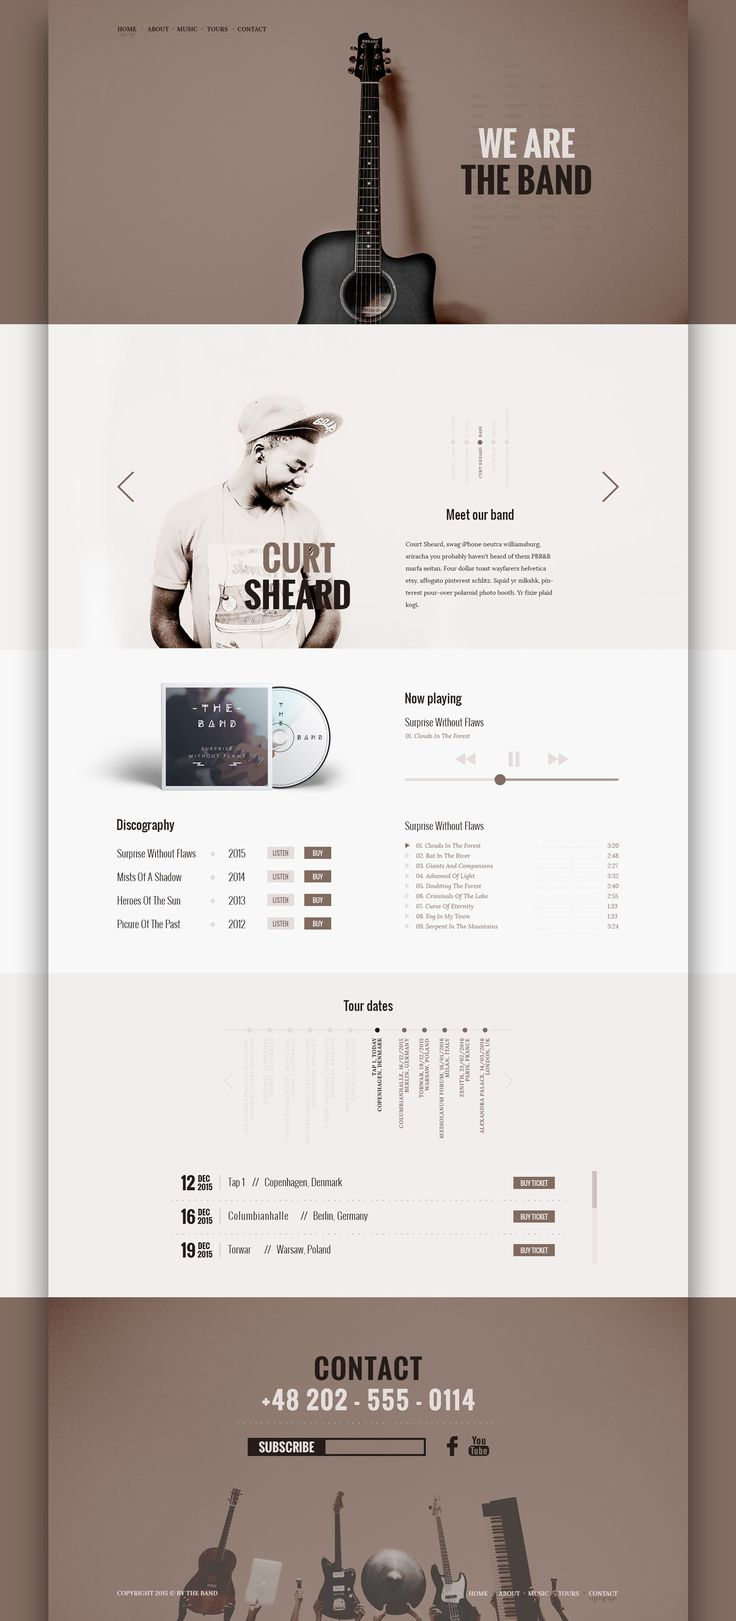 The Band - Free PSD Template for music related websites on Behance